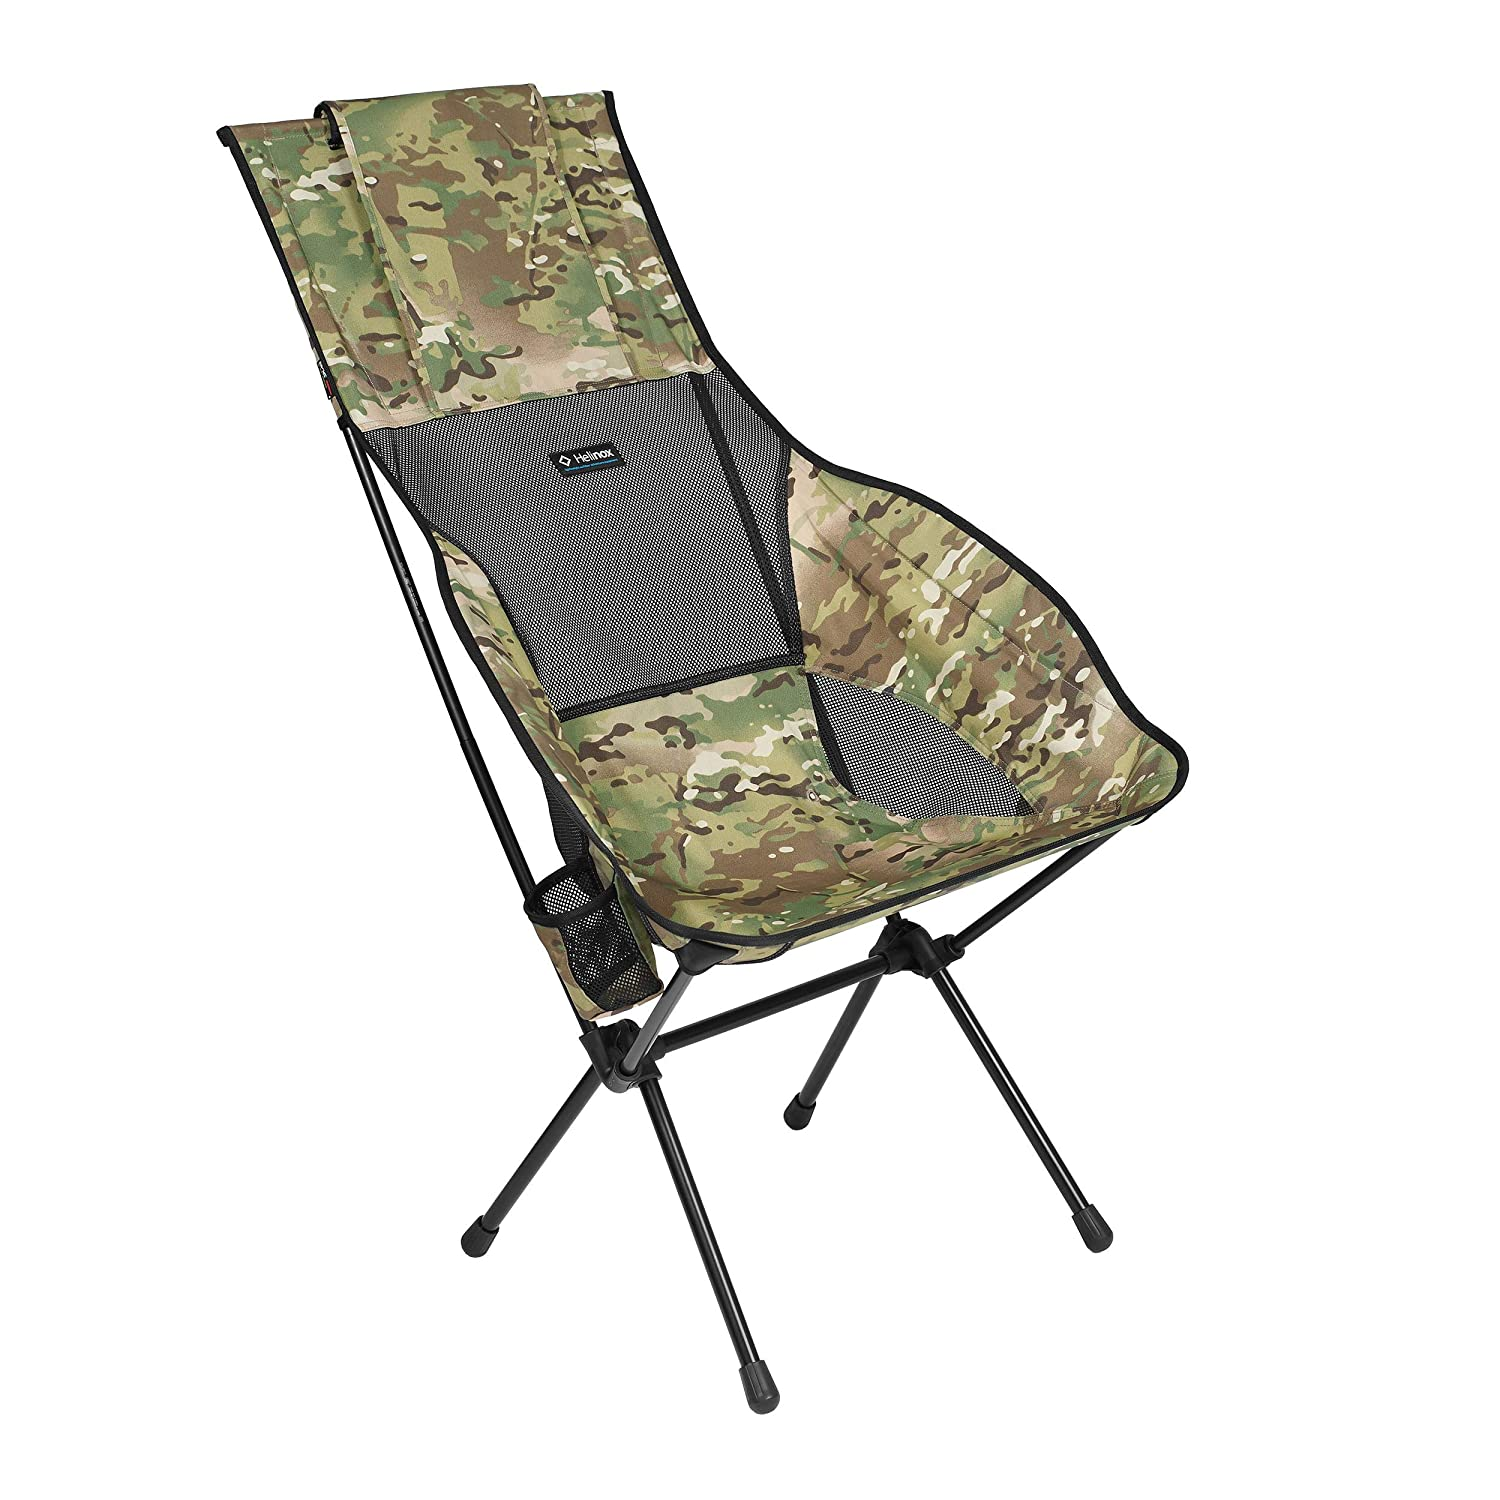 Helinox Savanna High-Back Collapsible Camp Chair, Multicam  Diy Backpacking Chair